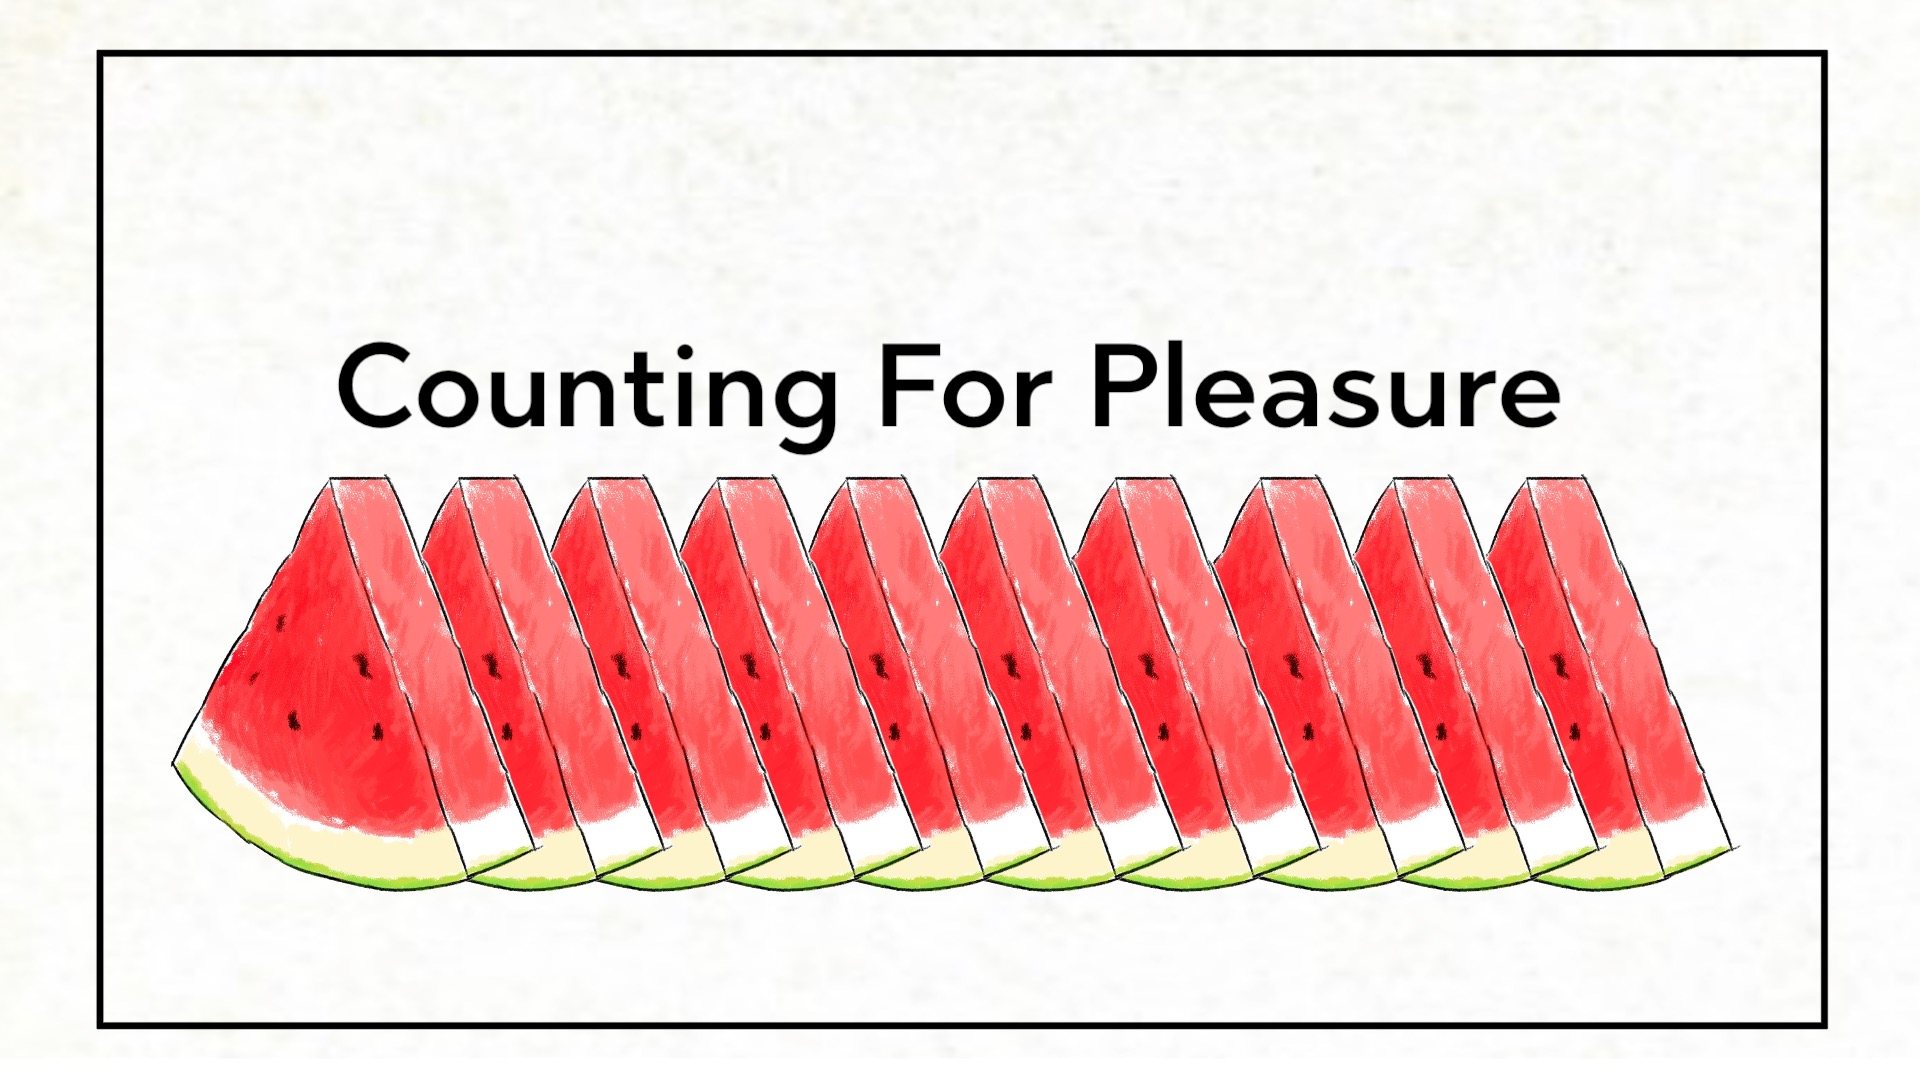 Counting For Pleasure 2020 PREVIEW.jpg